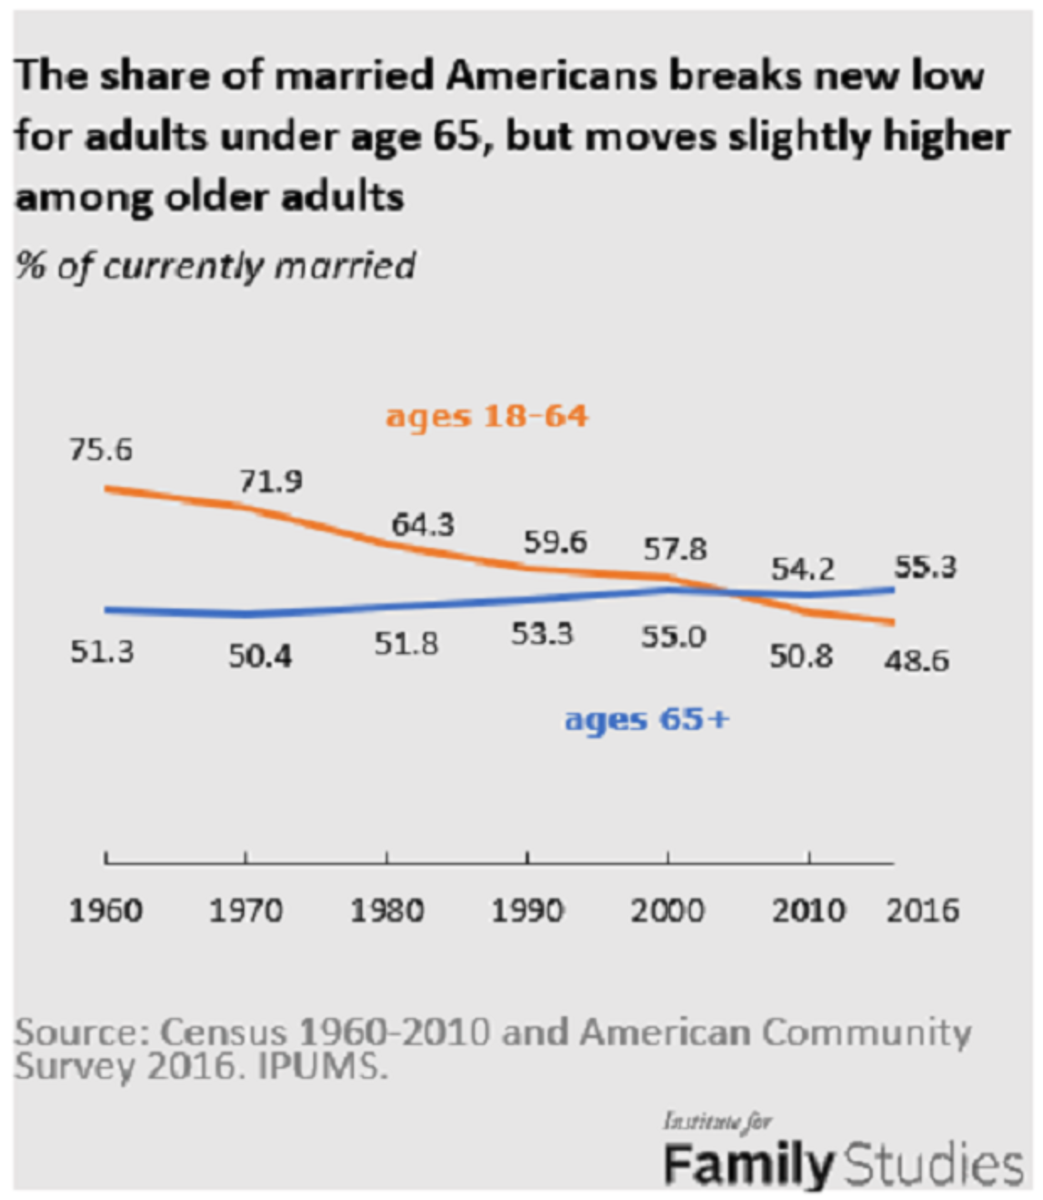 Marriage among older folks has increased.